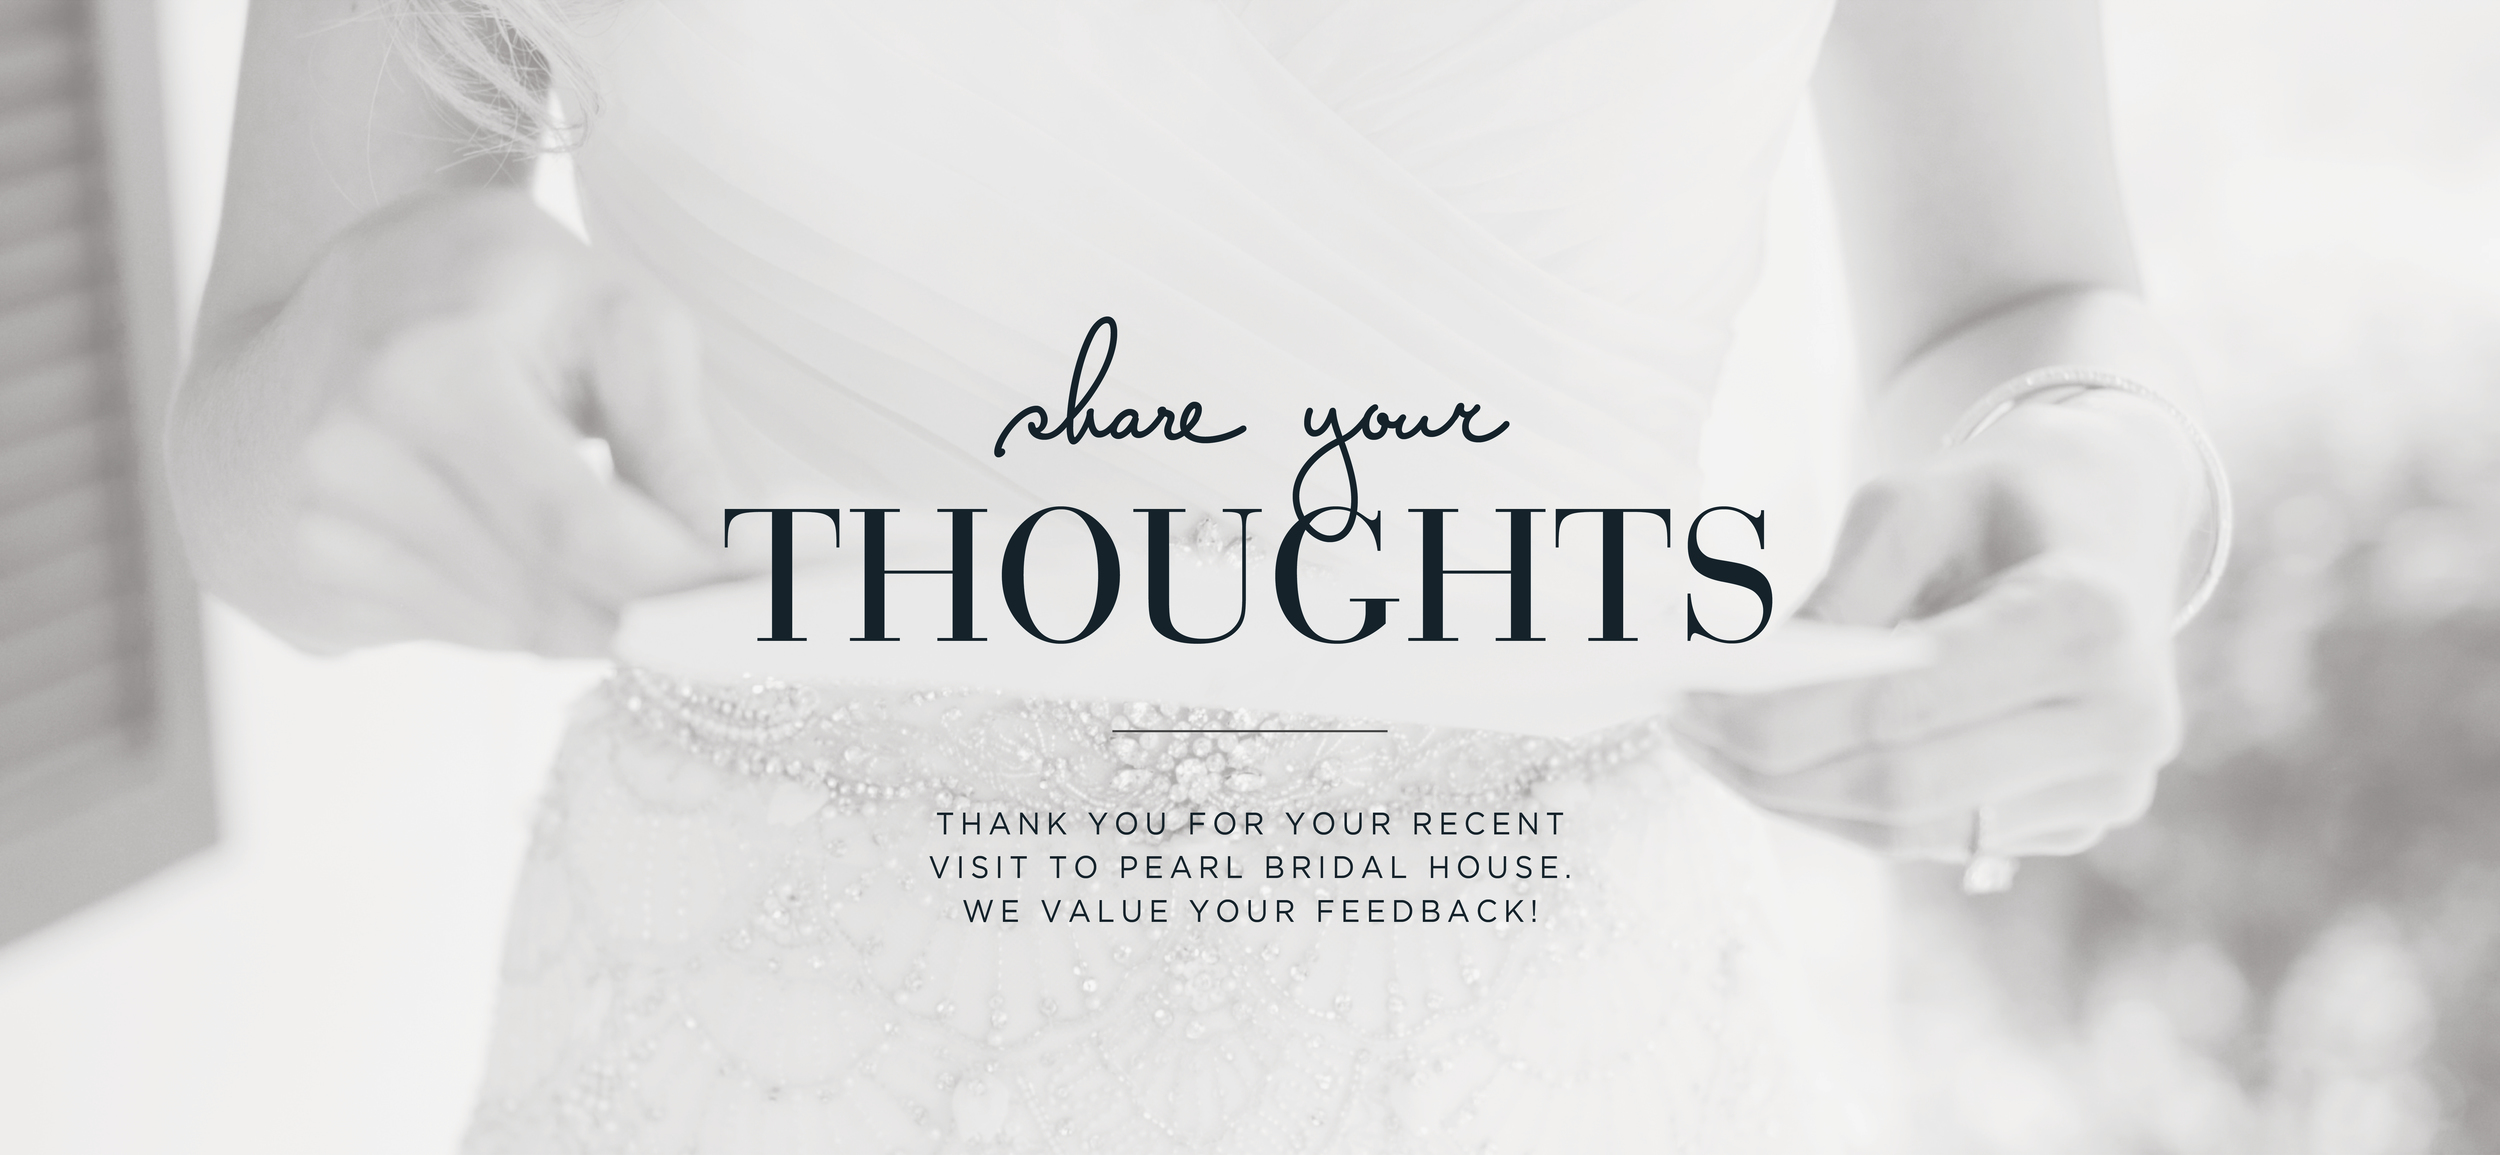 Pearl-Bridal-House-Share-Your-Thoughts.jpg